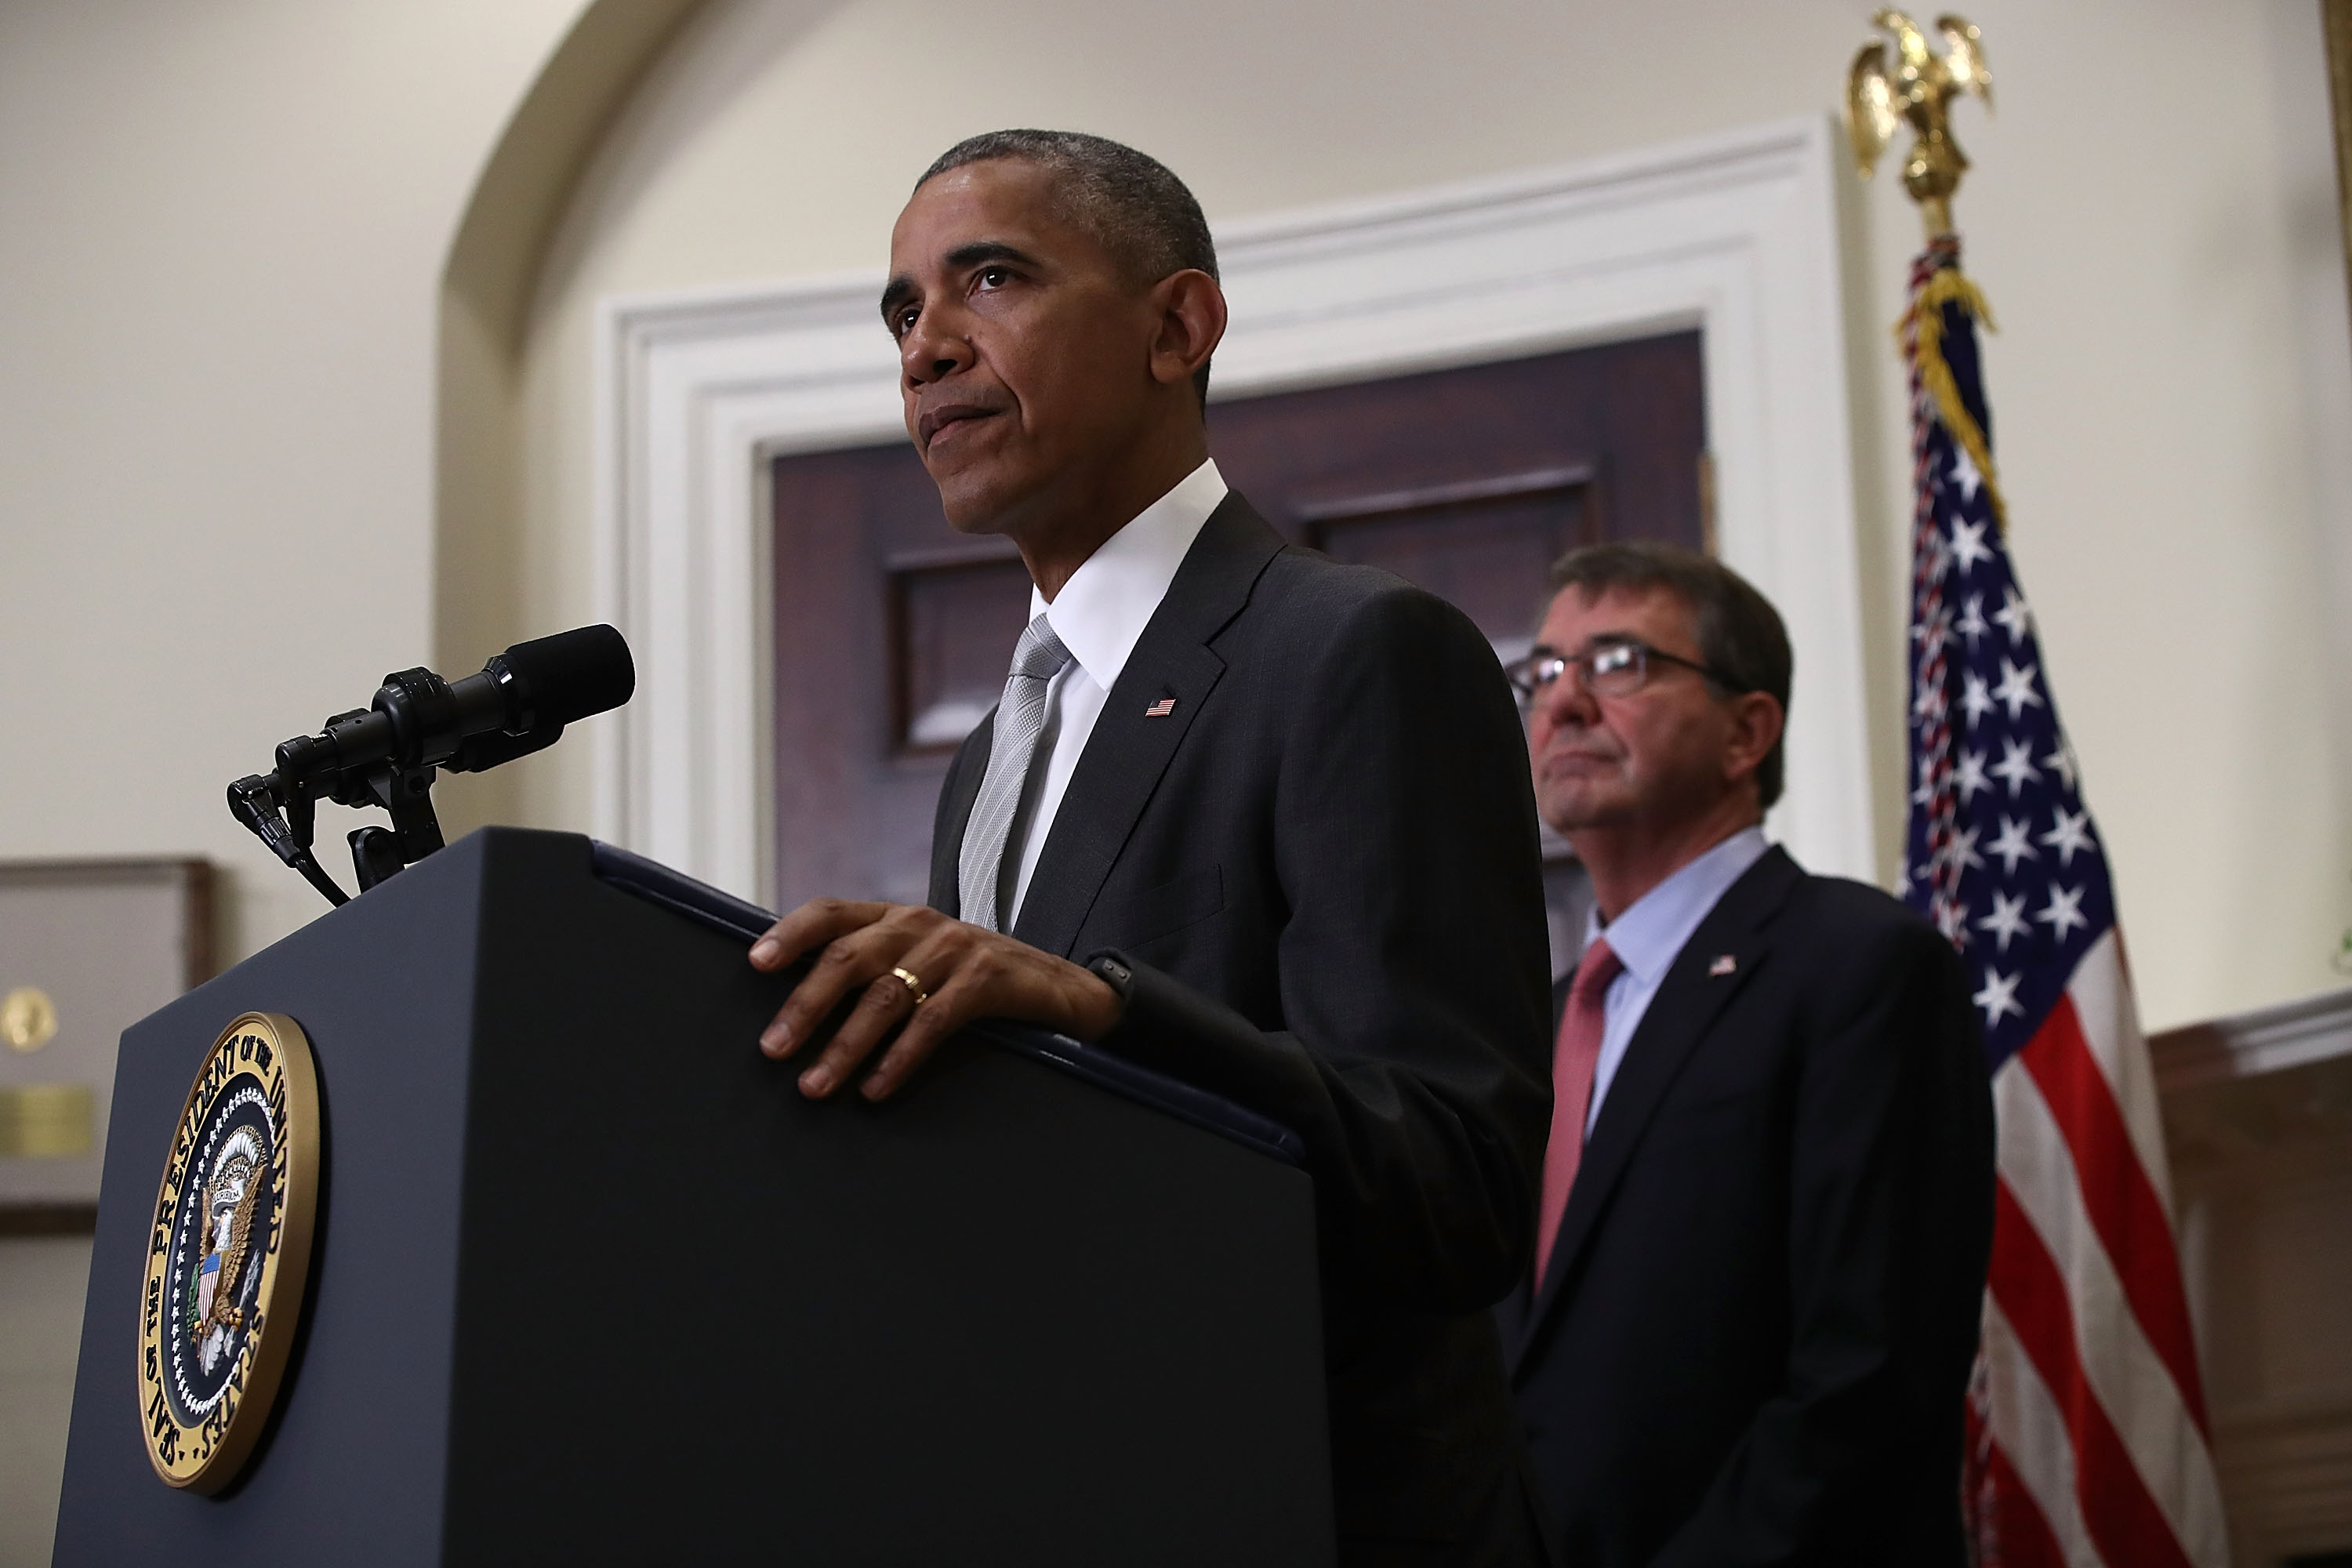 President Barack Obama delivers a statement on the deployment of U.S. troops in Afghanistan at the White House on July 6, 2016.